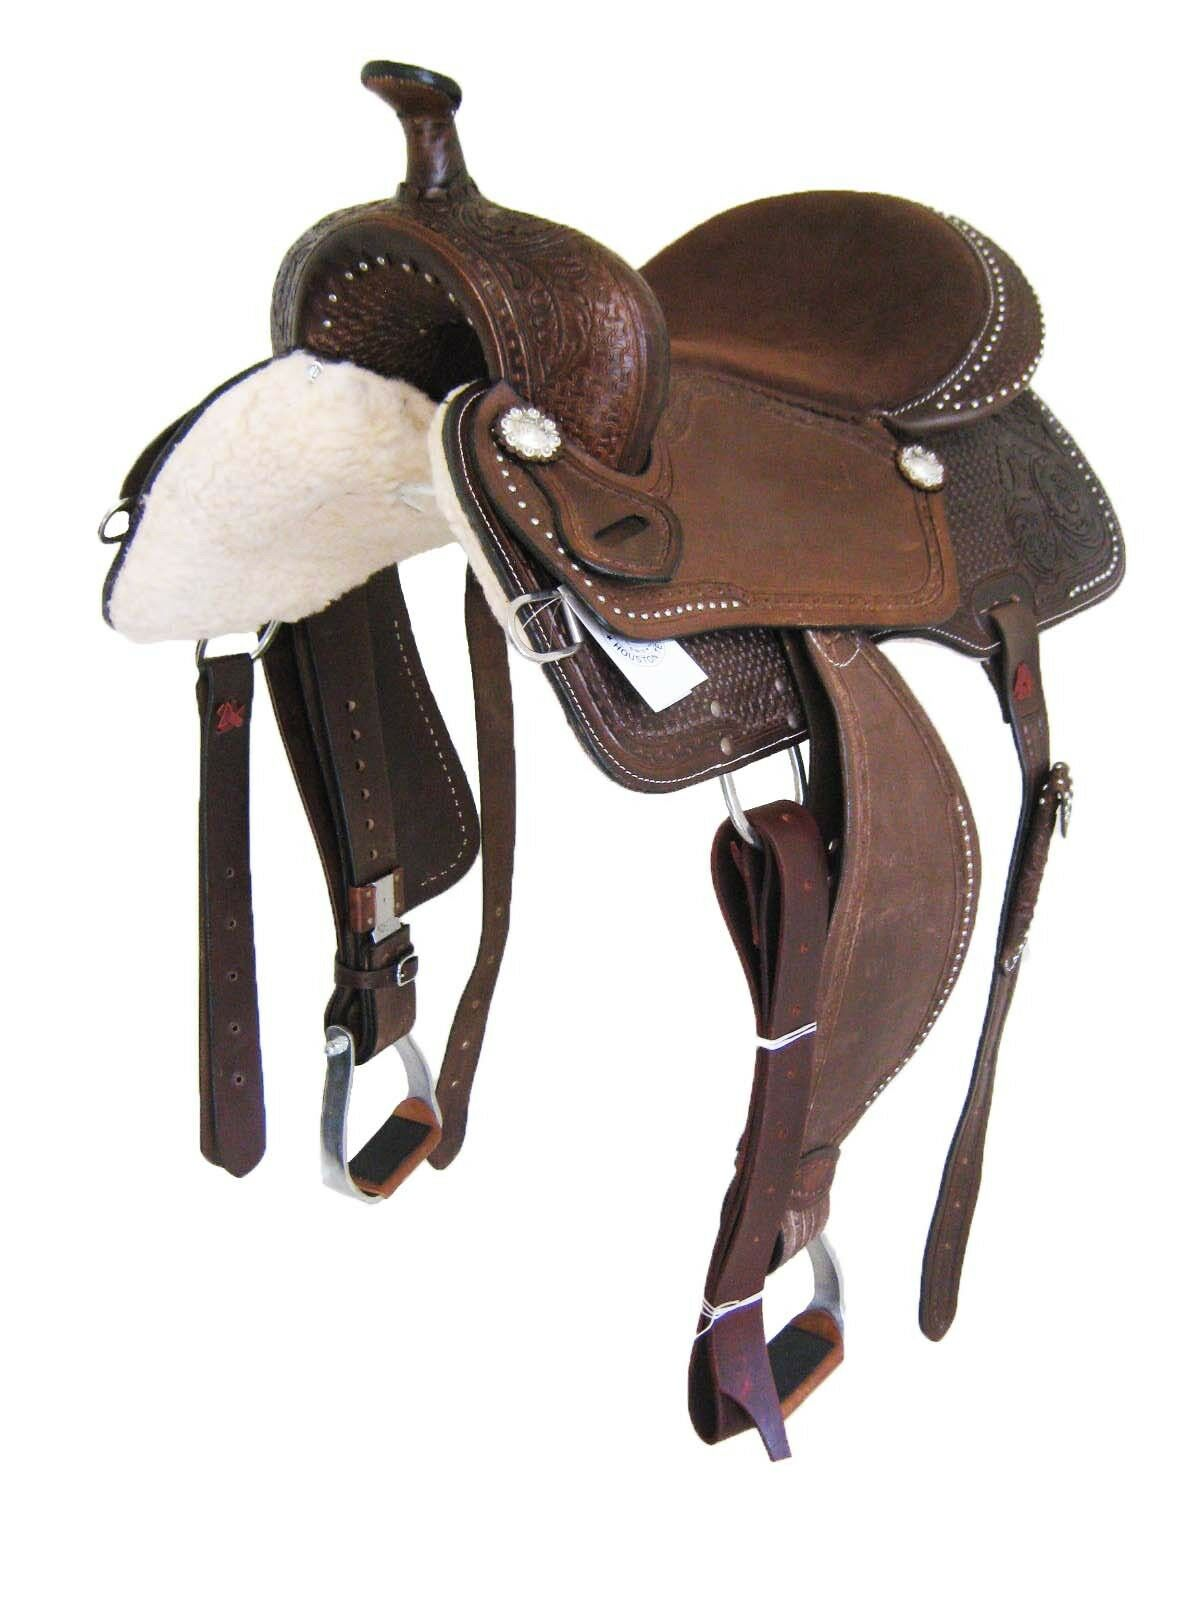 THSL  WESTERN BARREL SADDLE BROWN ROUGH OUT 17  (10112) NEW